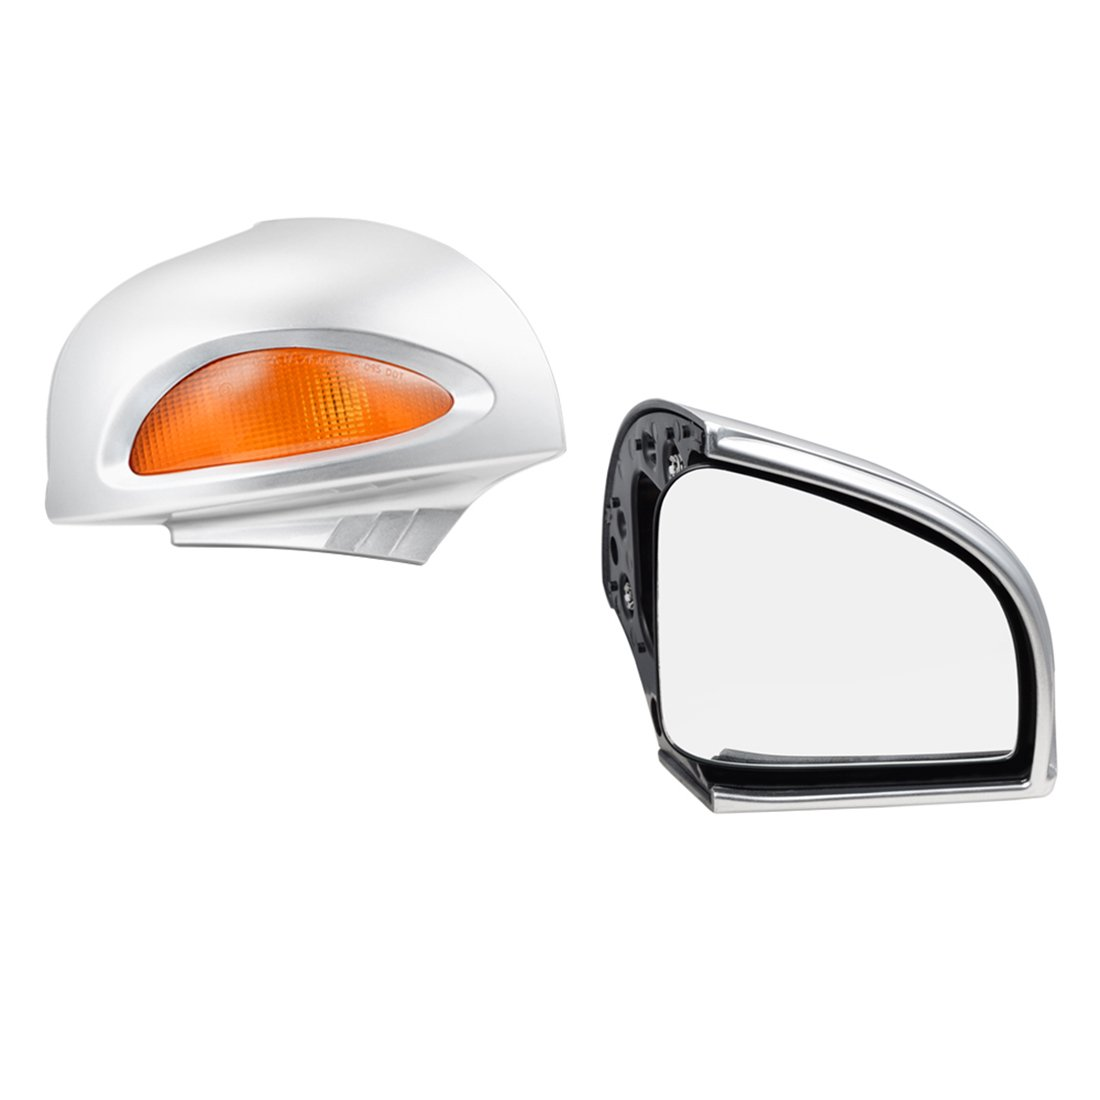 Clipsone Side Rear View Rearview Mirror Silver with Turn Signal Lens for BMW R1100RT R1150RT 1100 1150